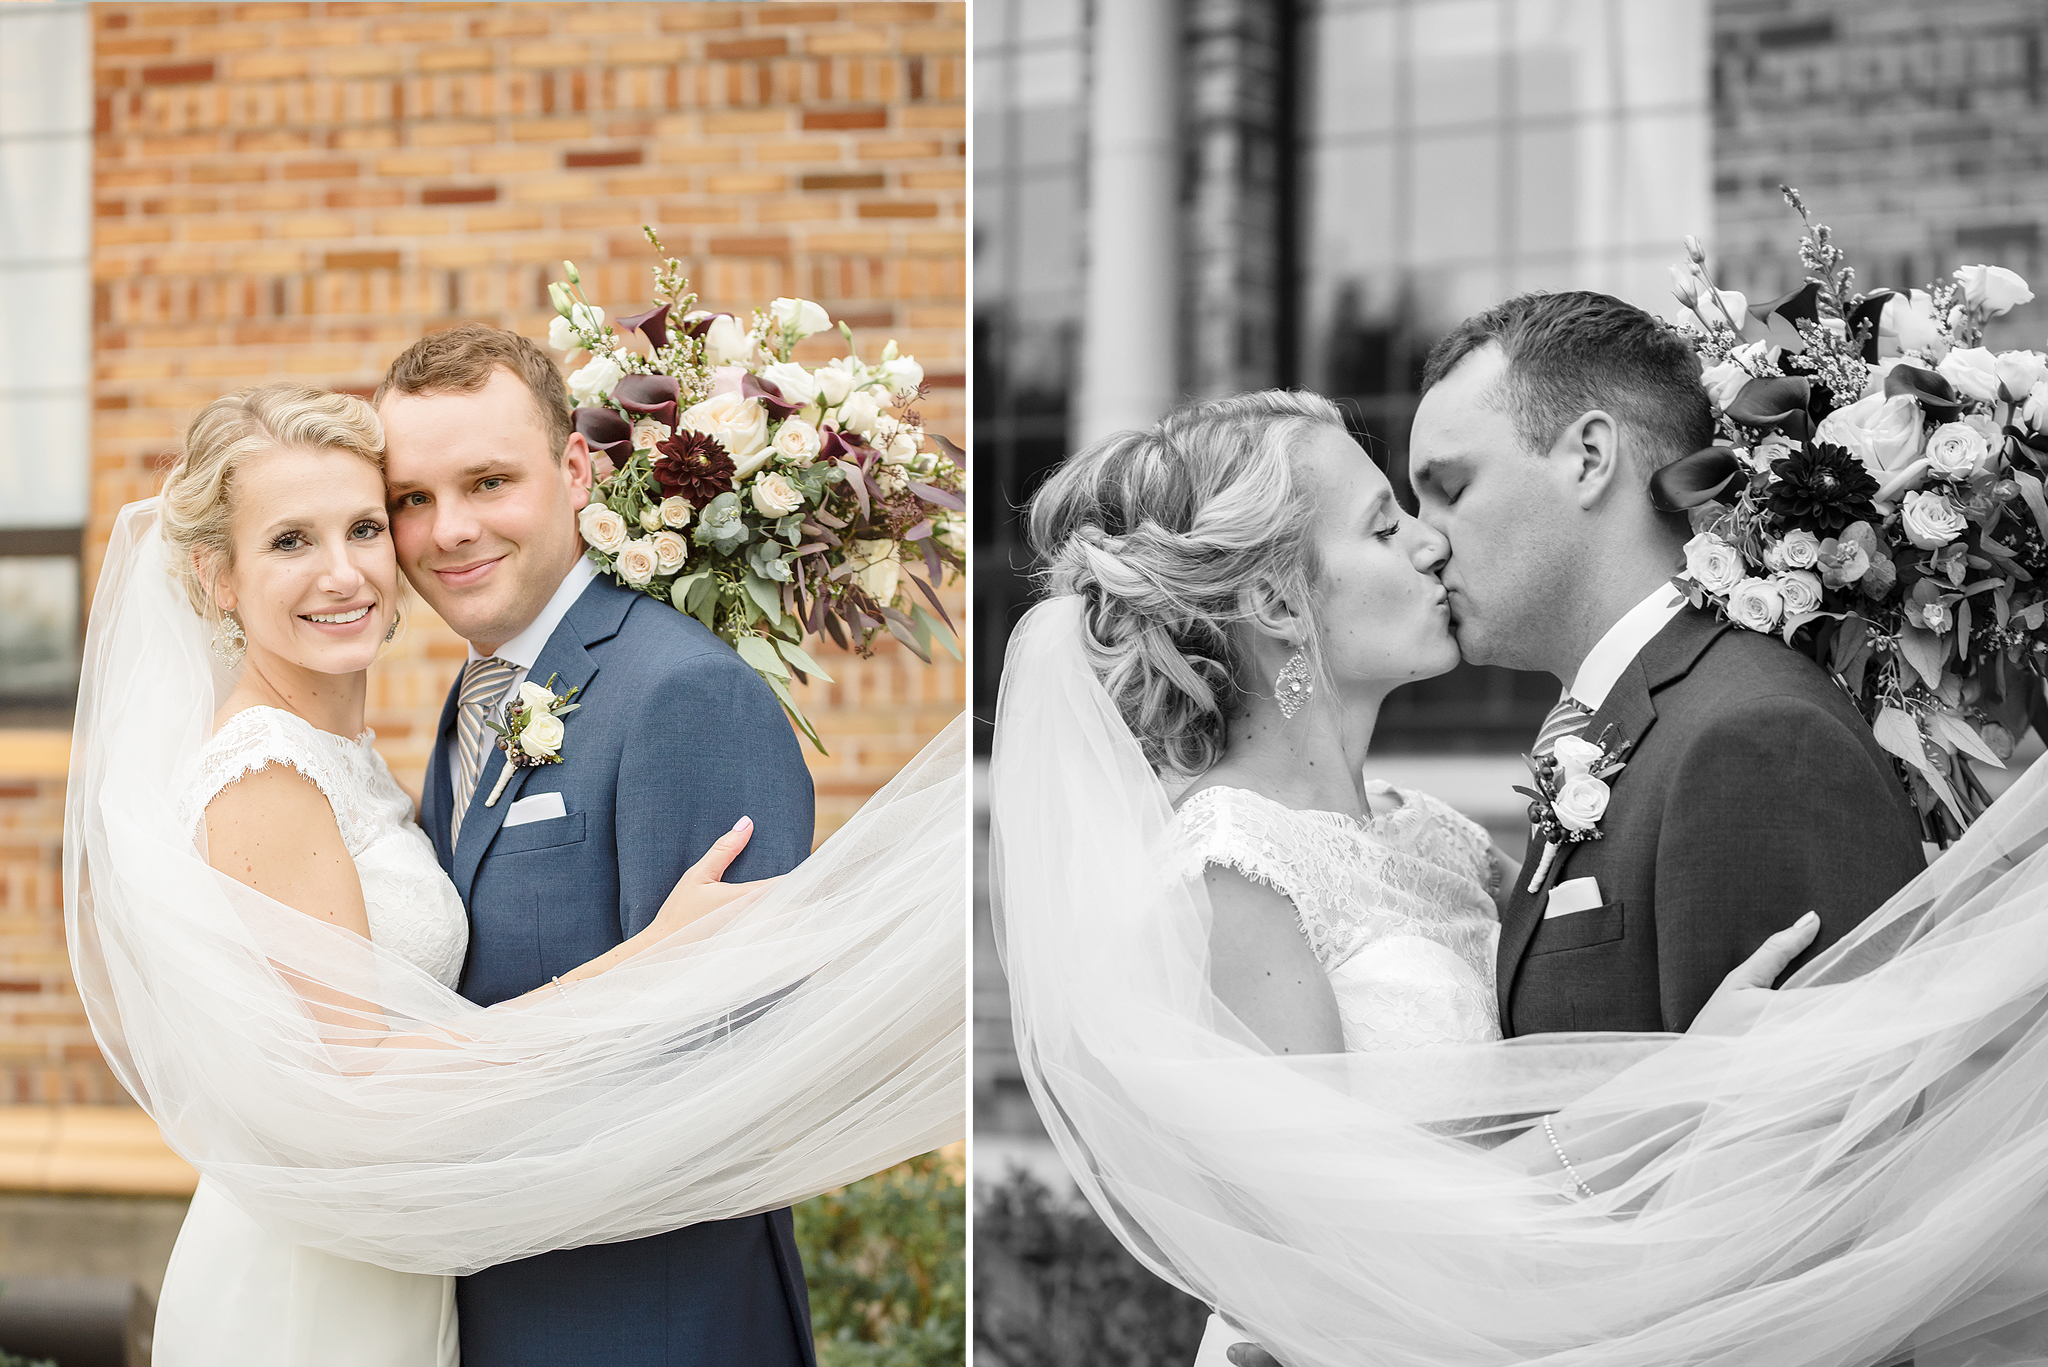 Lindsay-Adkins-Photography-Michigan-Wedding-Photographer-Nazareth-Hall-Grand-Rapids-Ohio-Wedding-39